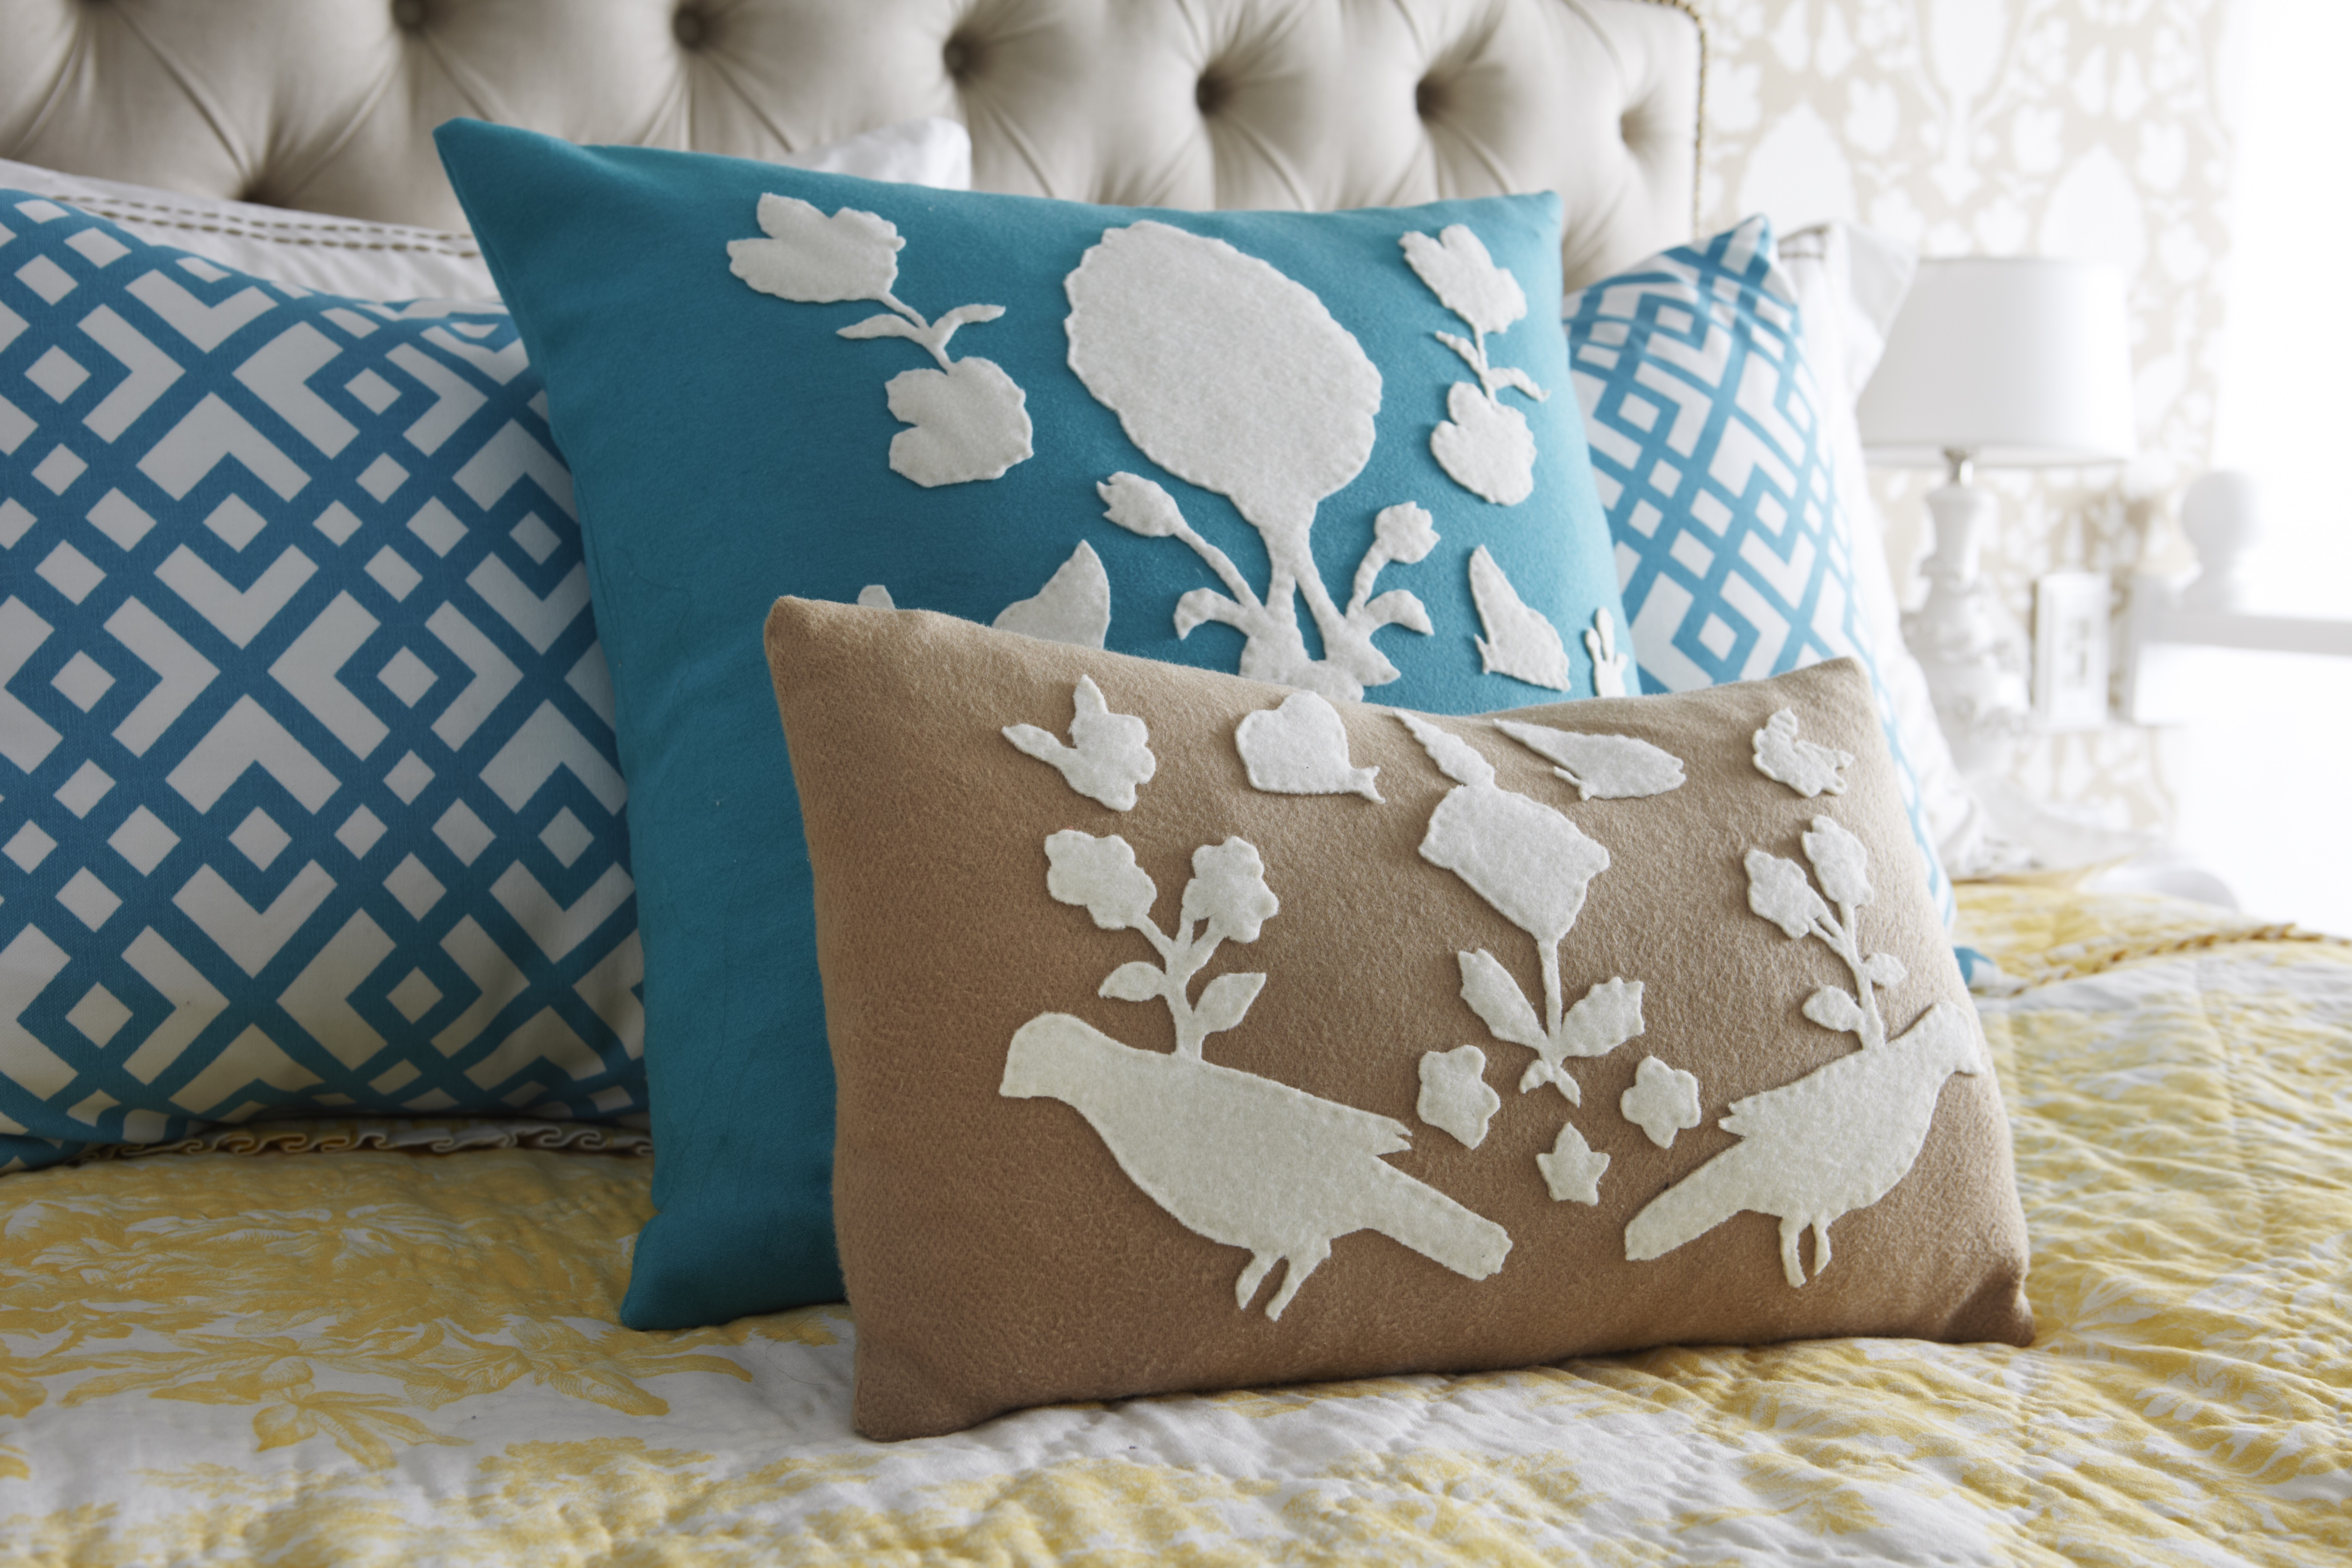 Paper pillow: felt appliqué from a wallpaper template living in a